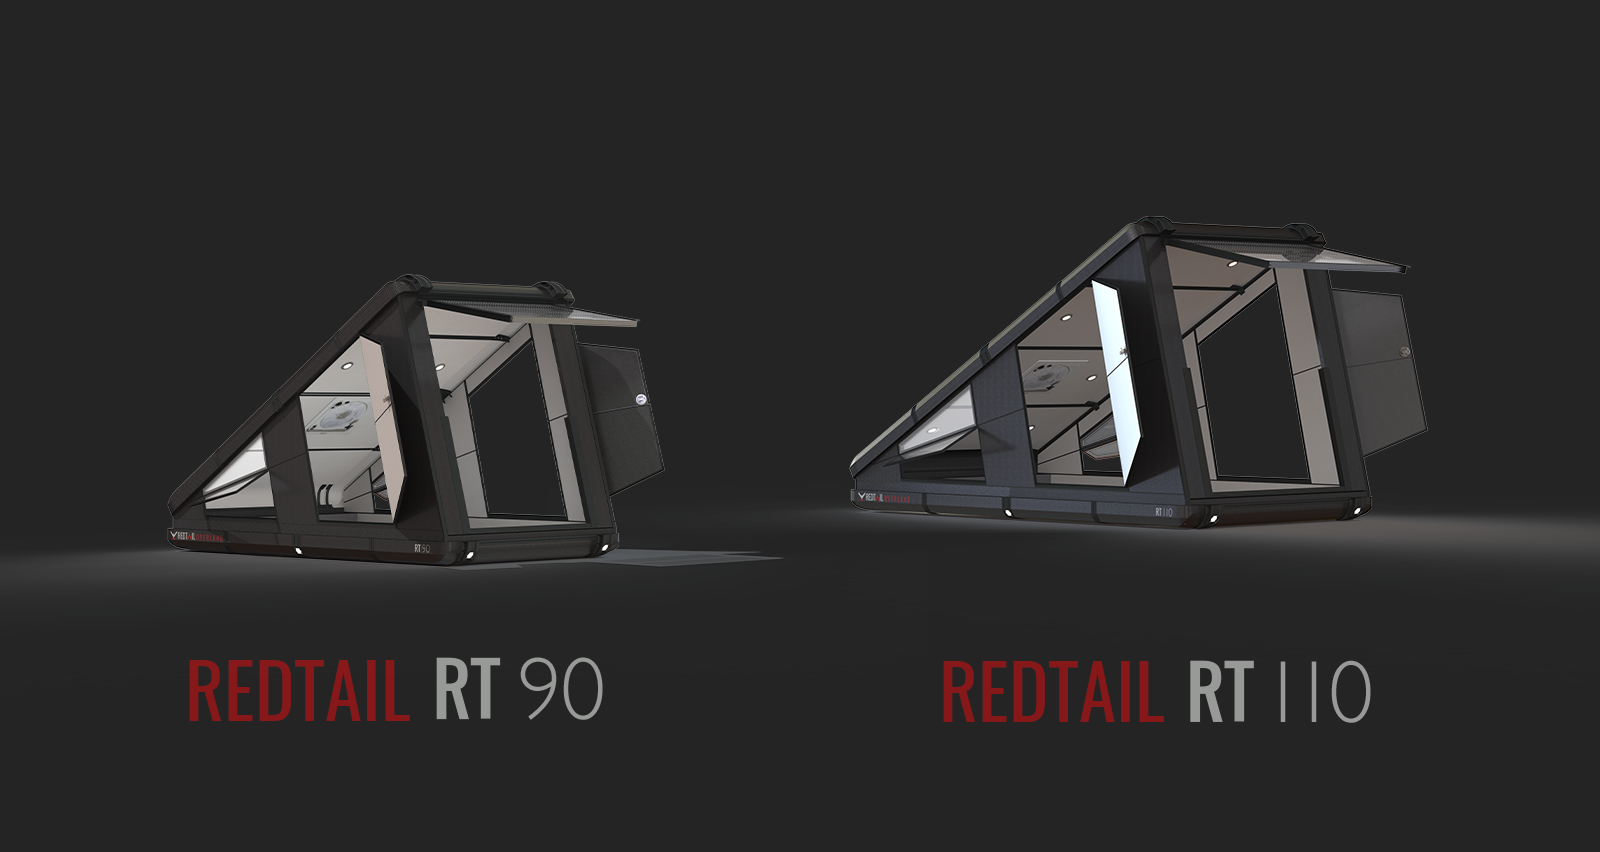 The Redtail Overland Hard Sided Roof Top Camper (RTC). The World's first hard-sided rooftop tent. Compare the Redtail 110 and Redtail 90.